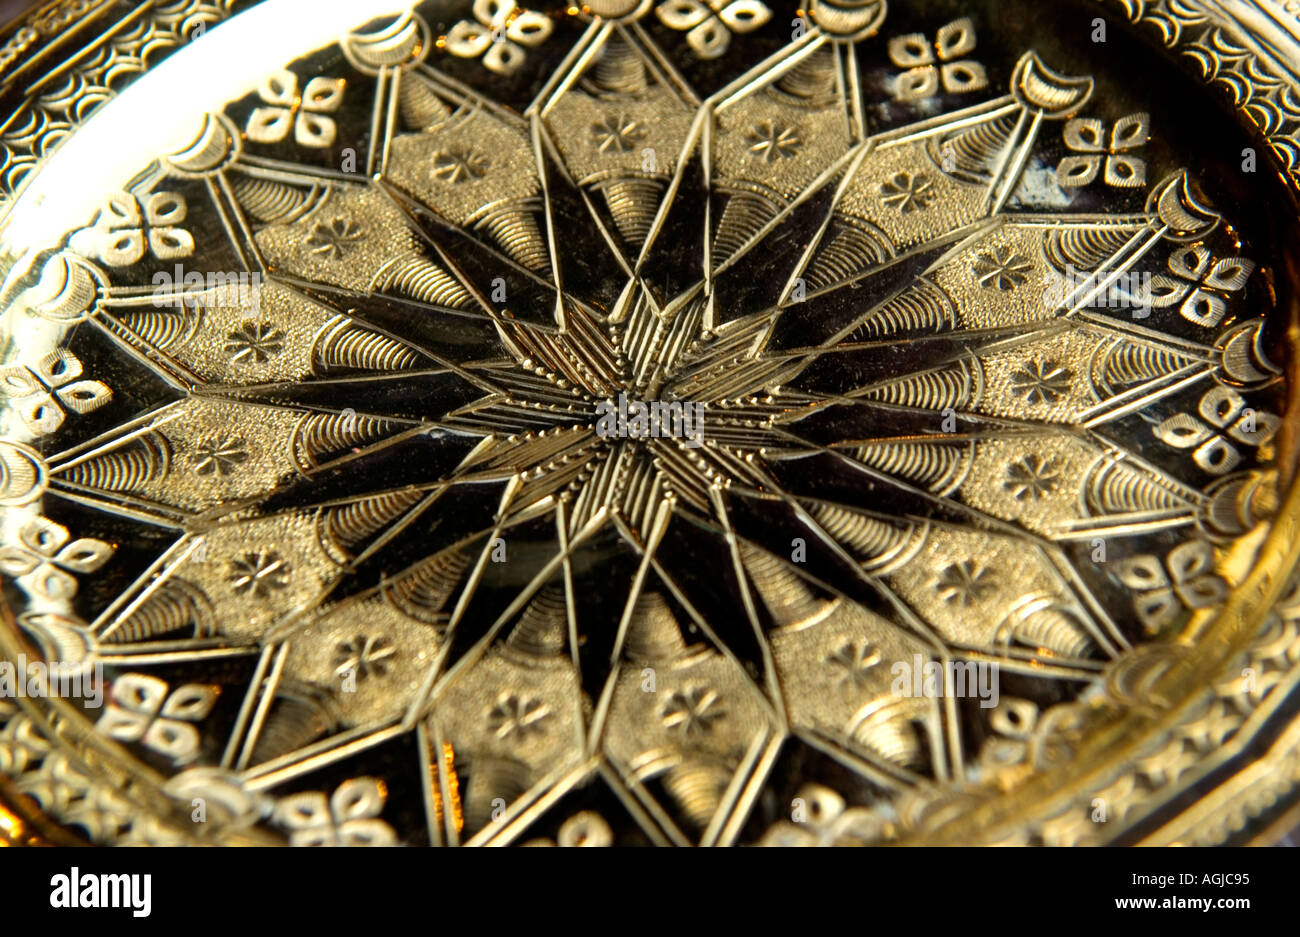 Gold decorative plate & Gold decorative plate Stock Photo: 2632852 - Alamy